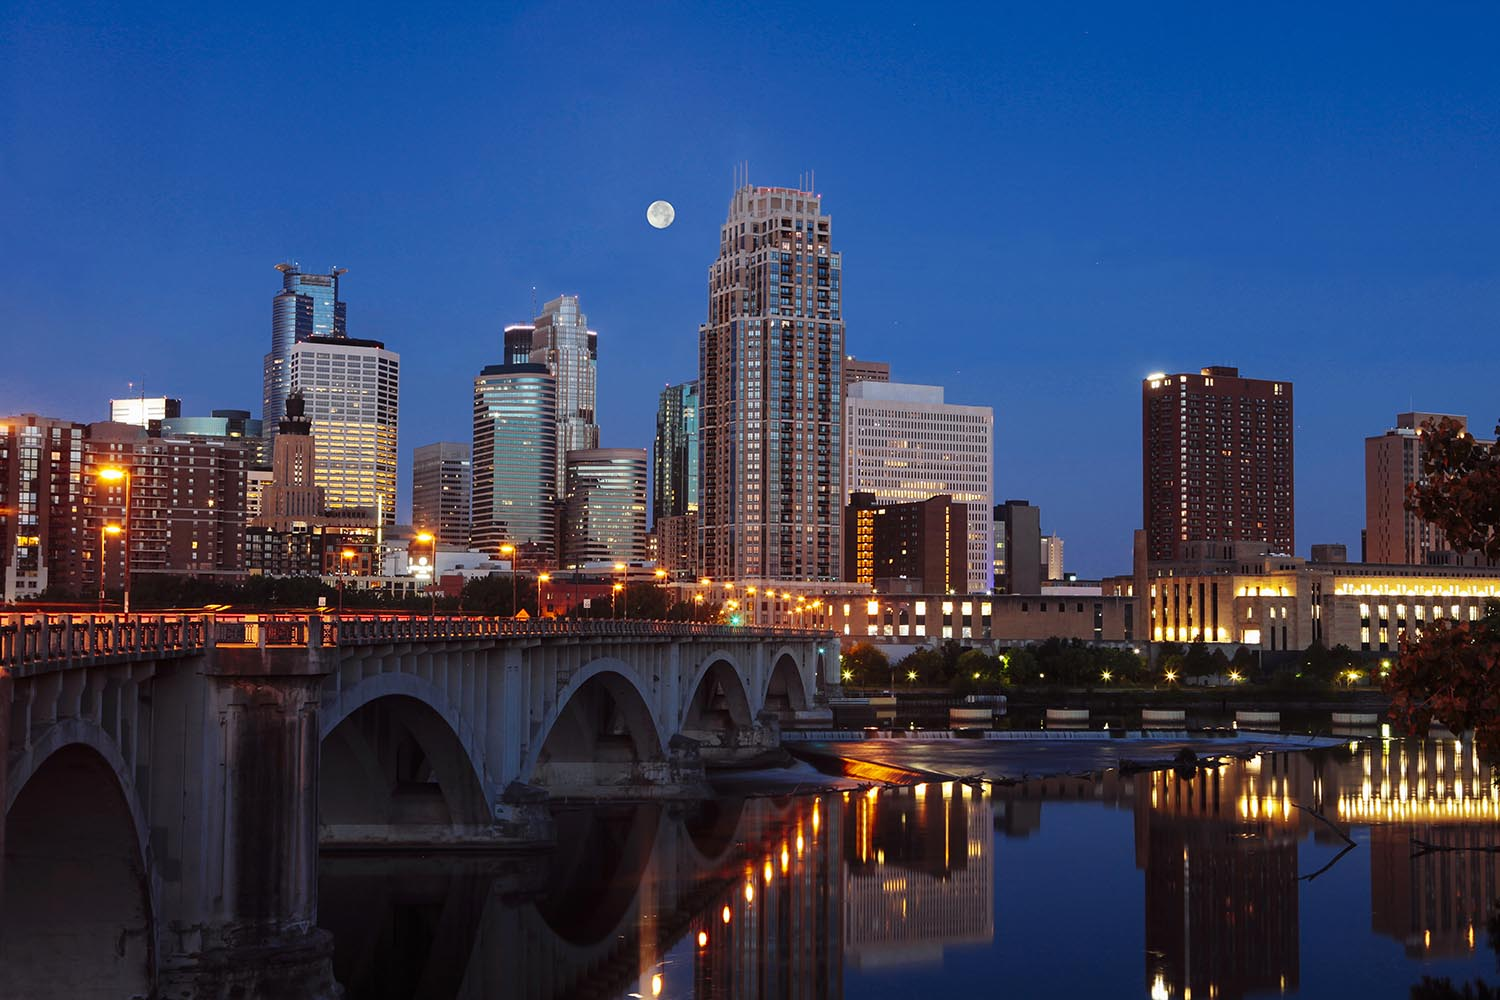 Minneapolis, Minnesota skyline with the Central SE bridge and Mississippi river in the early morning with the full moon. Grand Opening